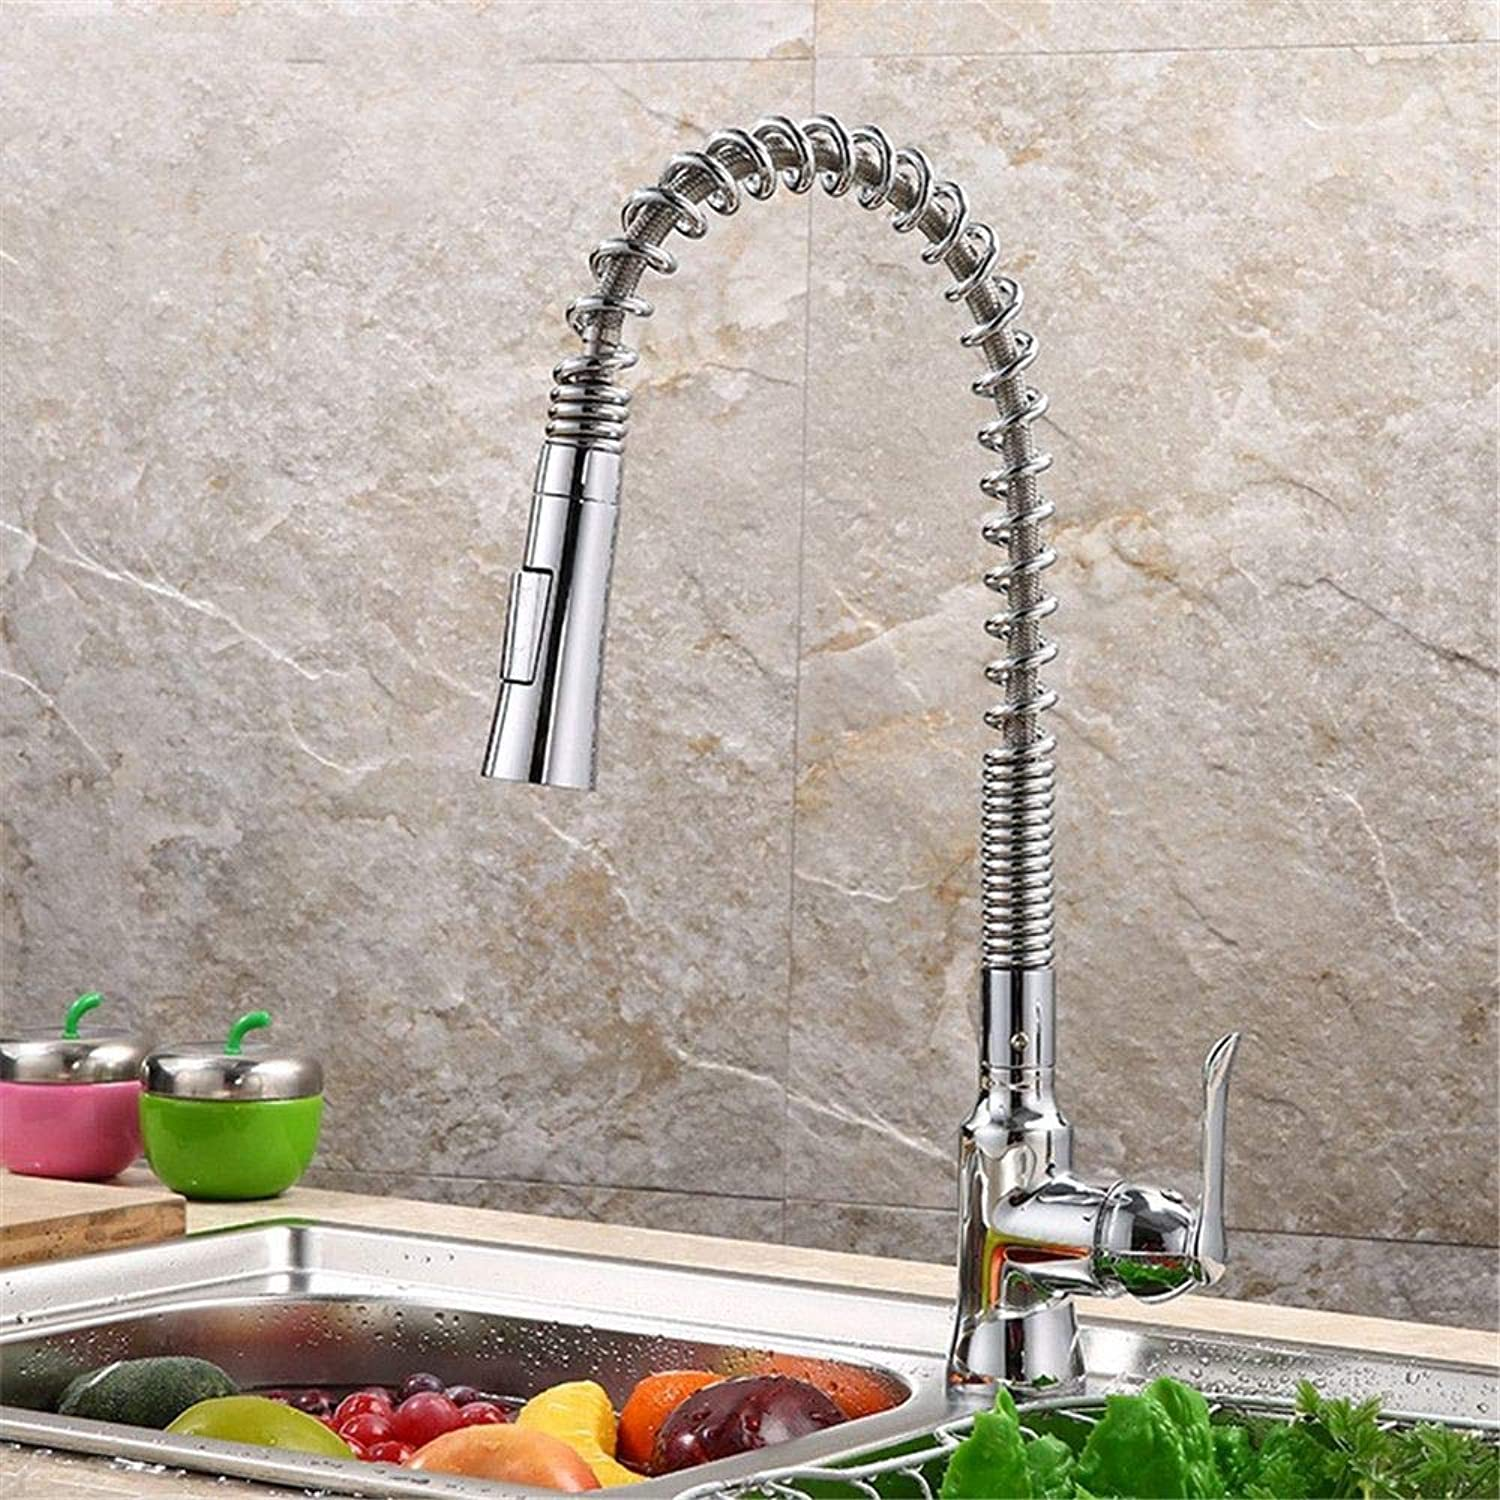 YAWEDA Kitchen Faucet with Three Sink Faucet Nickel Wire Drawing Chrome Plating Kitchen Faucet Spring Pulling Dual Hot and Cold Mixer Faucet